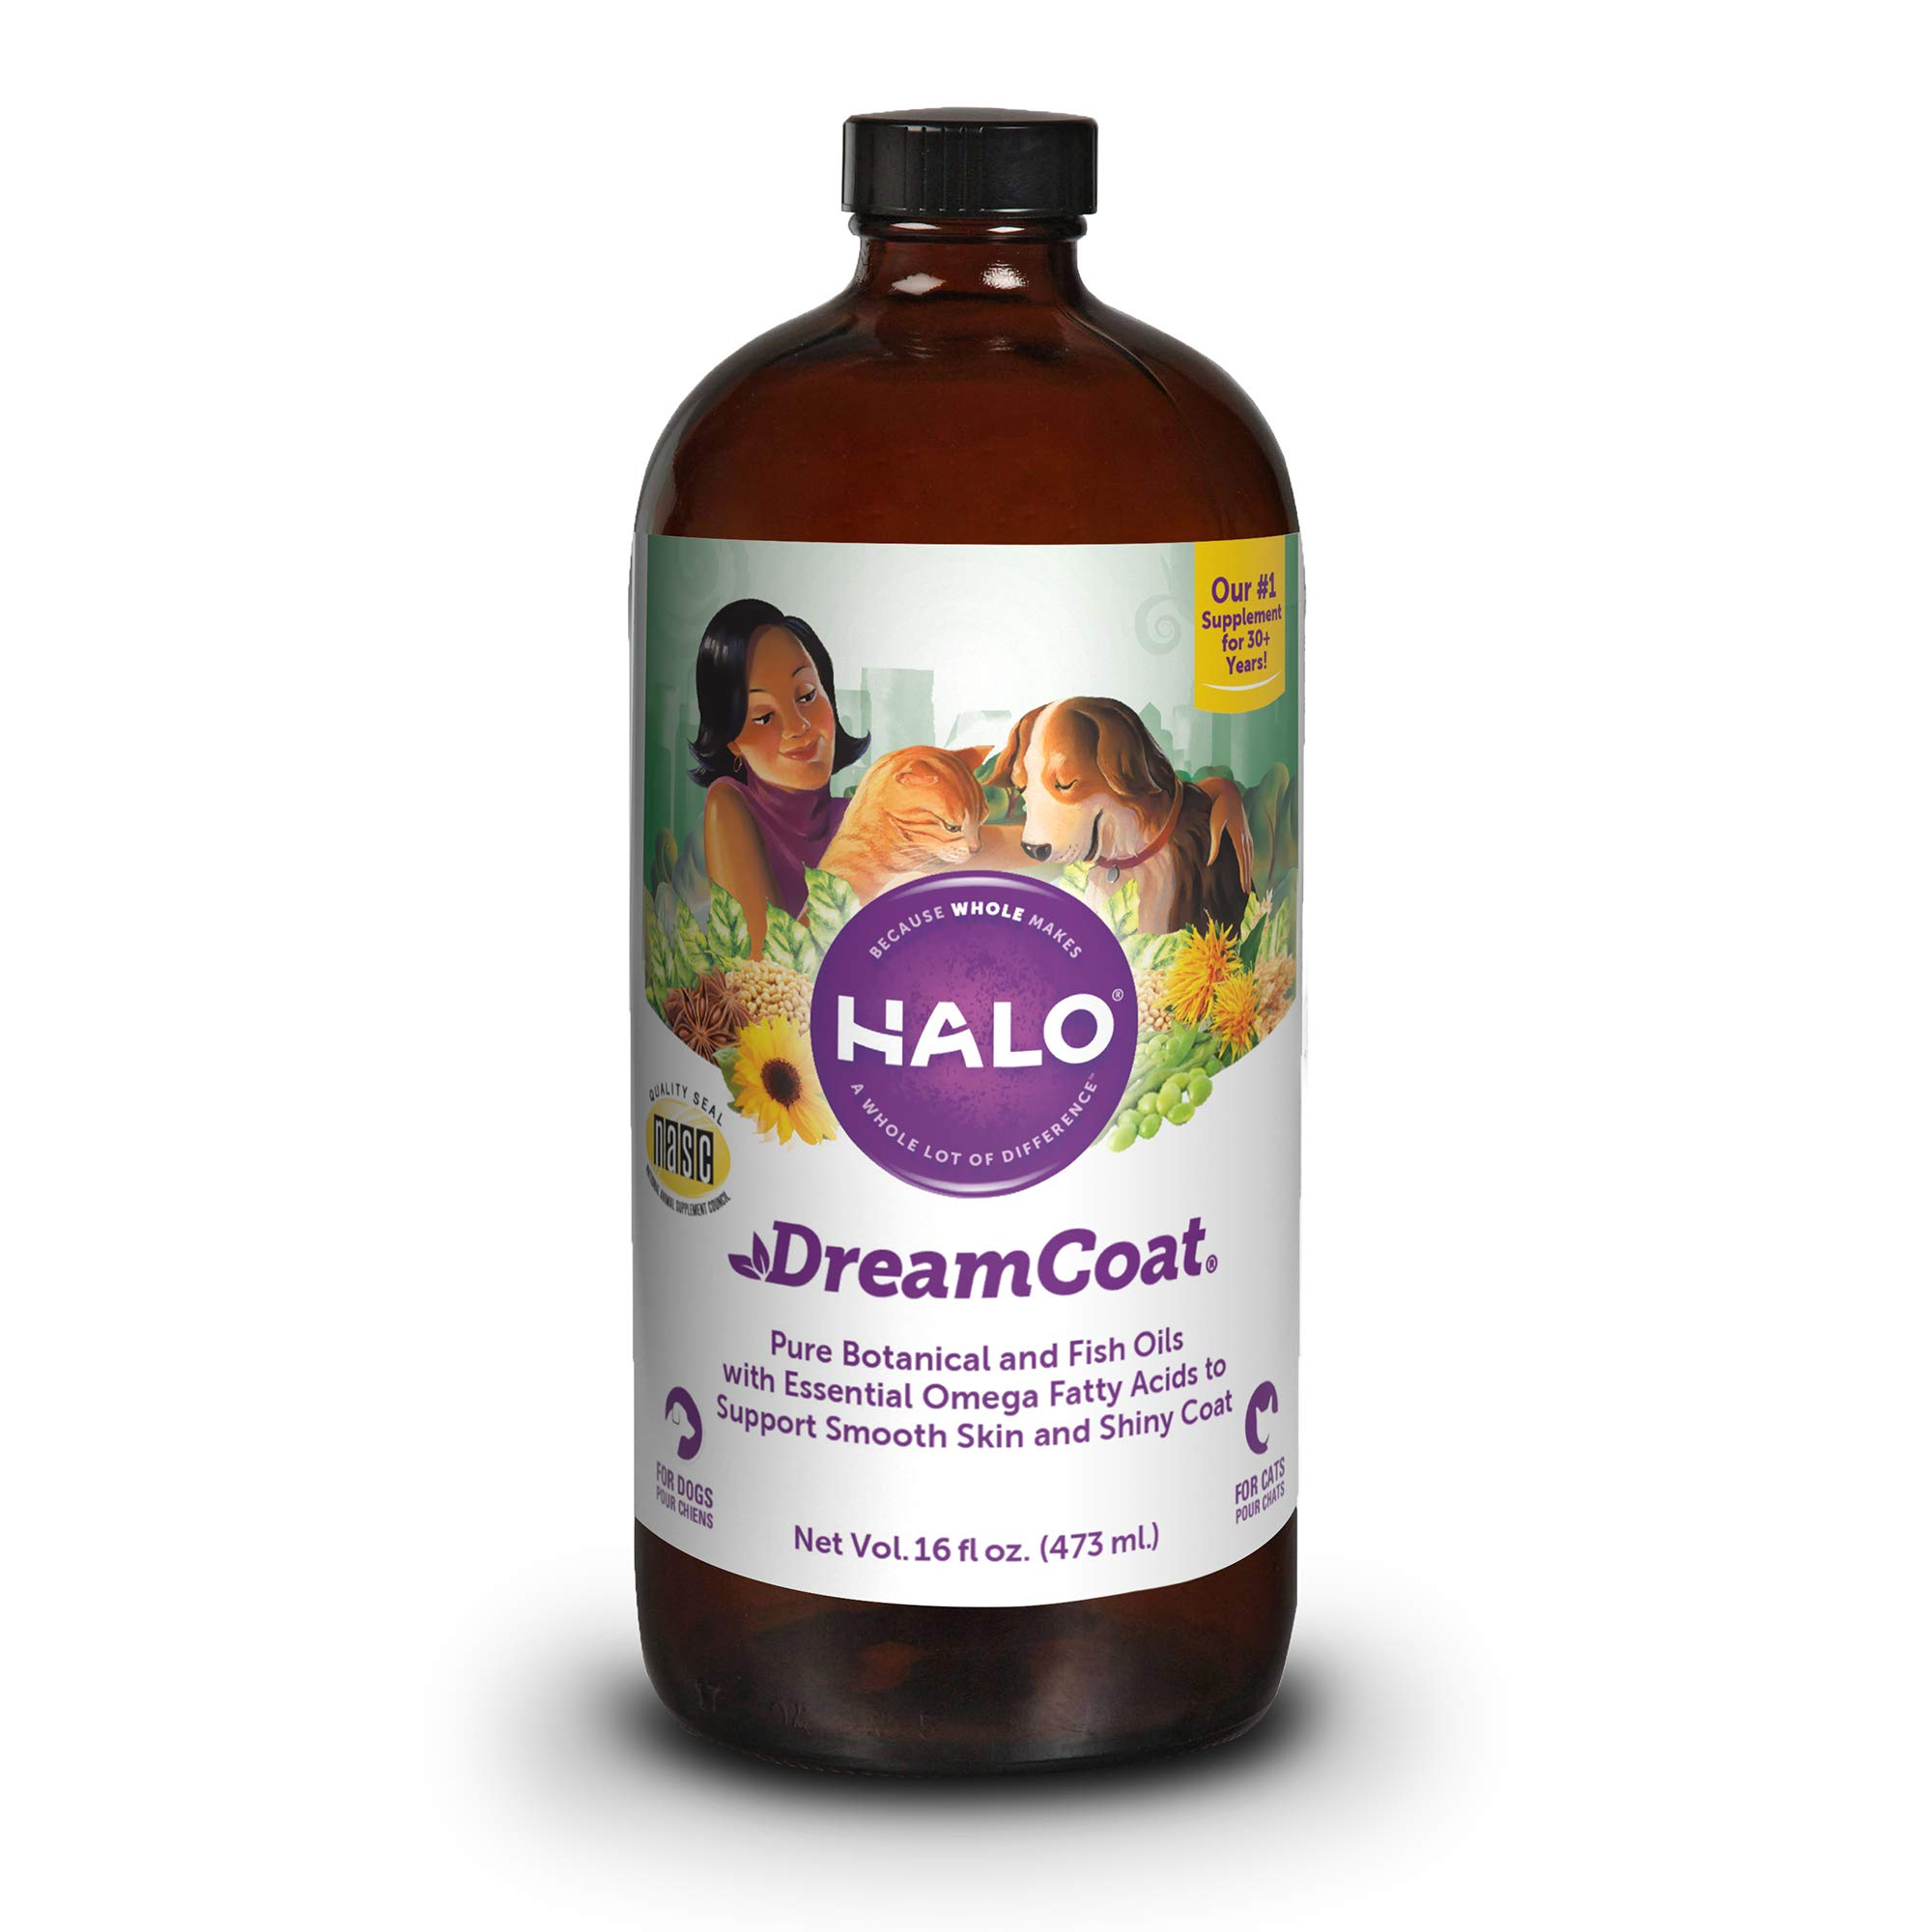 Halo Vita Glo Dream Coat Natural Meal Enhancement for Dogs & Cats, 16-Ounce Bottle by HALO